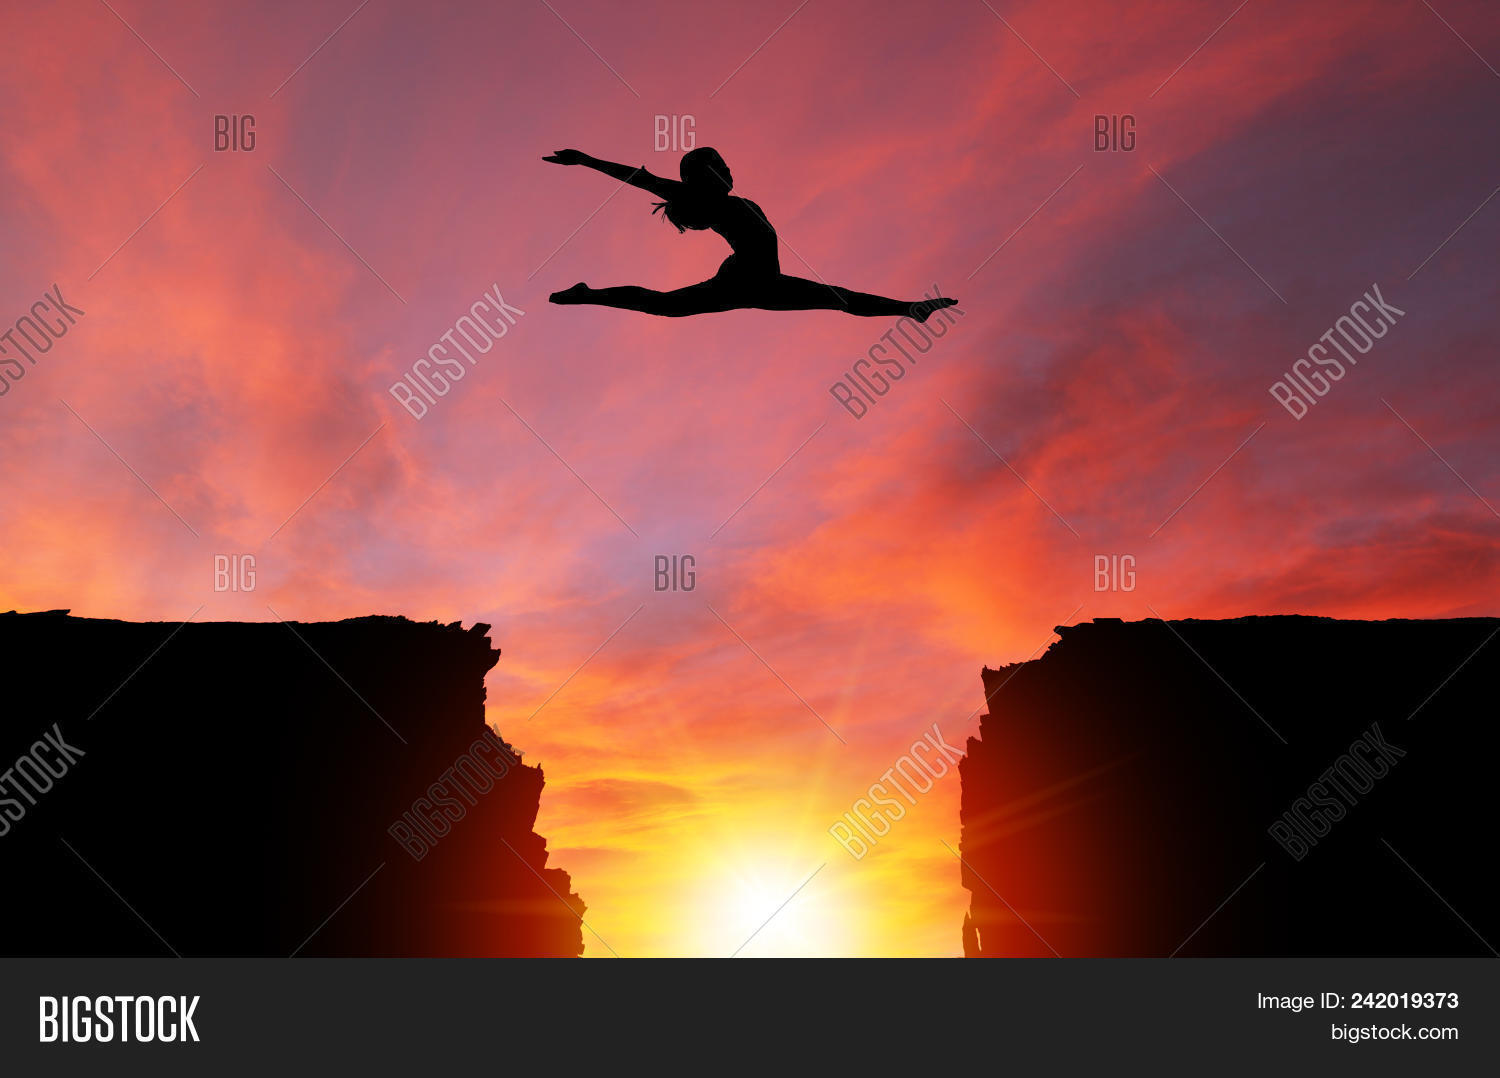 Achievement,Adventure,Backgrounds,Challenge,Cliff,Concept,Conquering,Copy,Courage,Dancer,Dancing,Dawn,Determination,Edge,Emotion,Faith,Flying,Freedom,Girl,High,Joy,Jumping,Landscape,Leap,Lifestyles,Morning,Mountain,Nature,Outdoors,Peak,Ravine,Reaching,Risk,Silhouette,Sky,Space,Splits,Success,Summer,Sun,Sunbeam,Sunny,Sunrise,Sunset,Up,Vitality,Winning,Woman